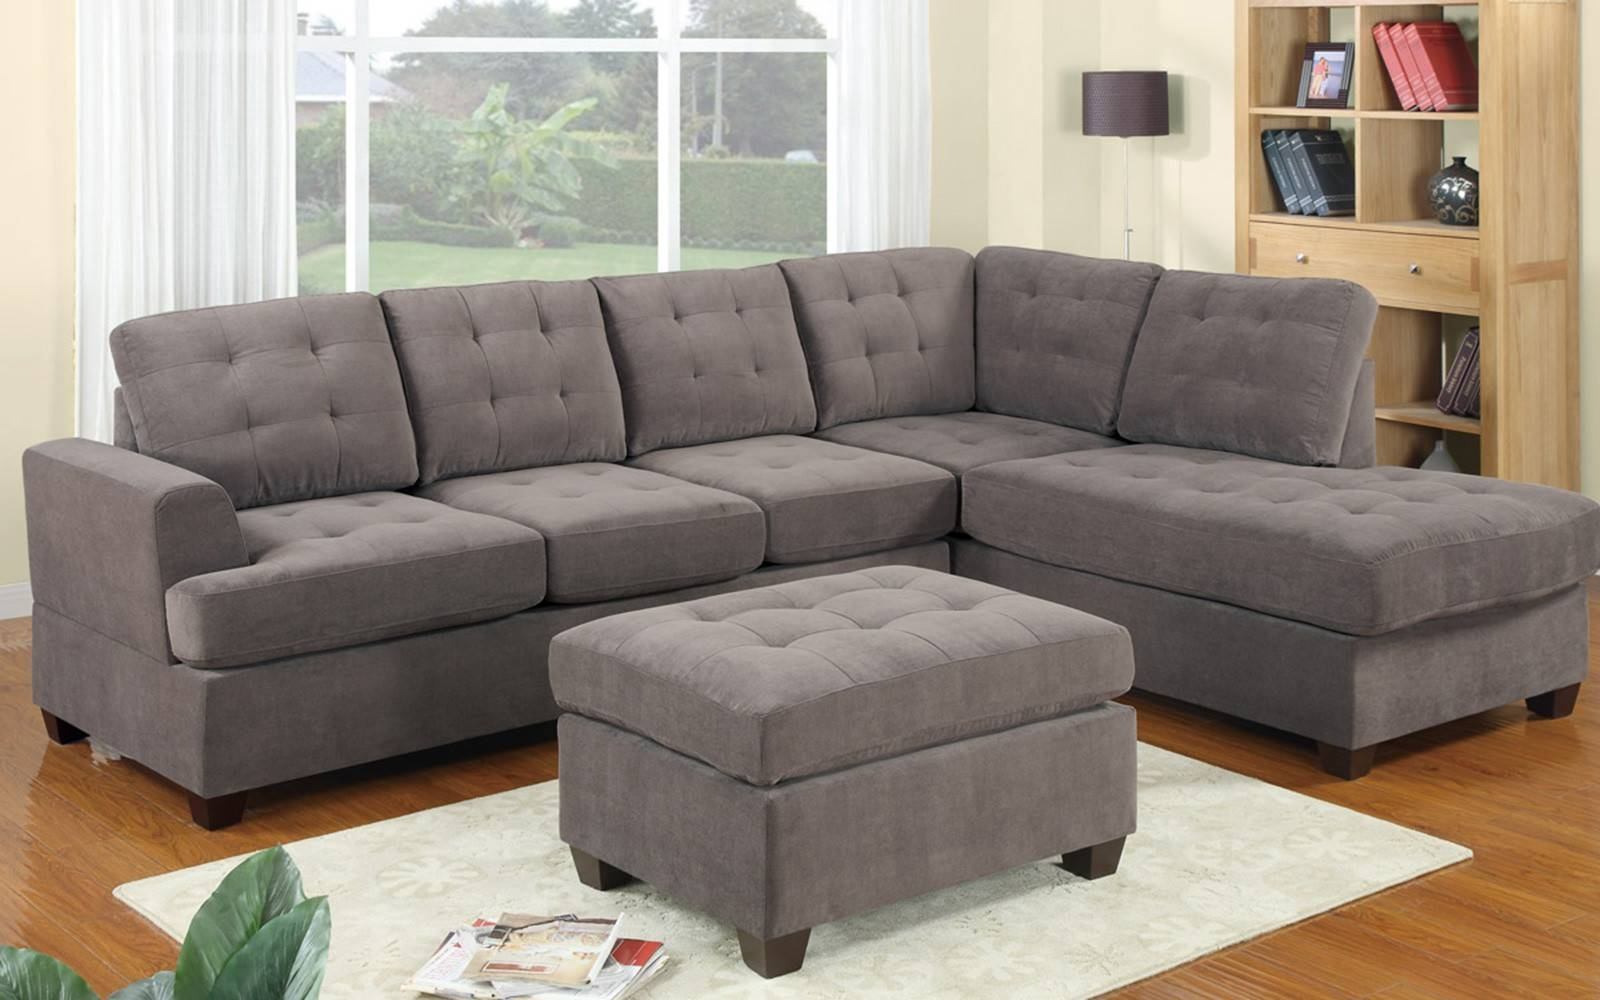 New Cheap Sectional Sofas Under 300 27 With Additional American with American Made Sectional Sofas (Image 19 of 30)